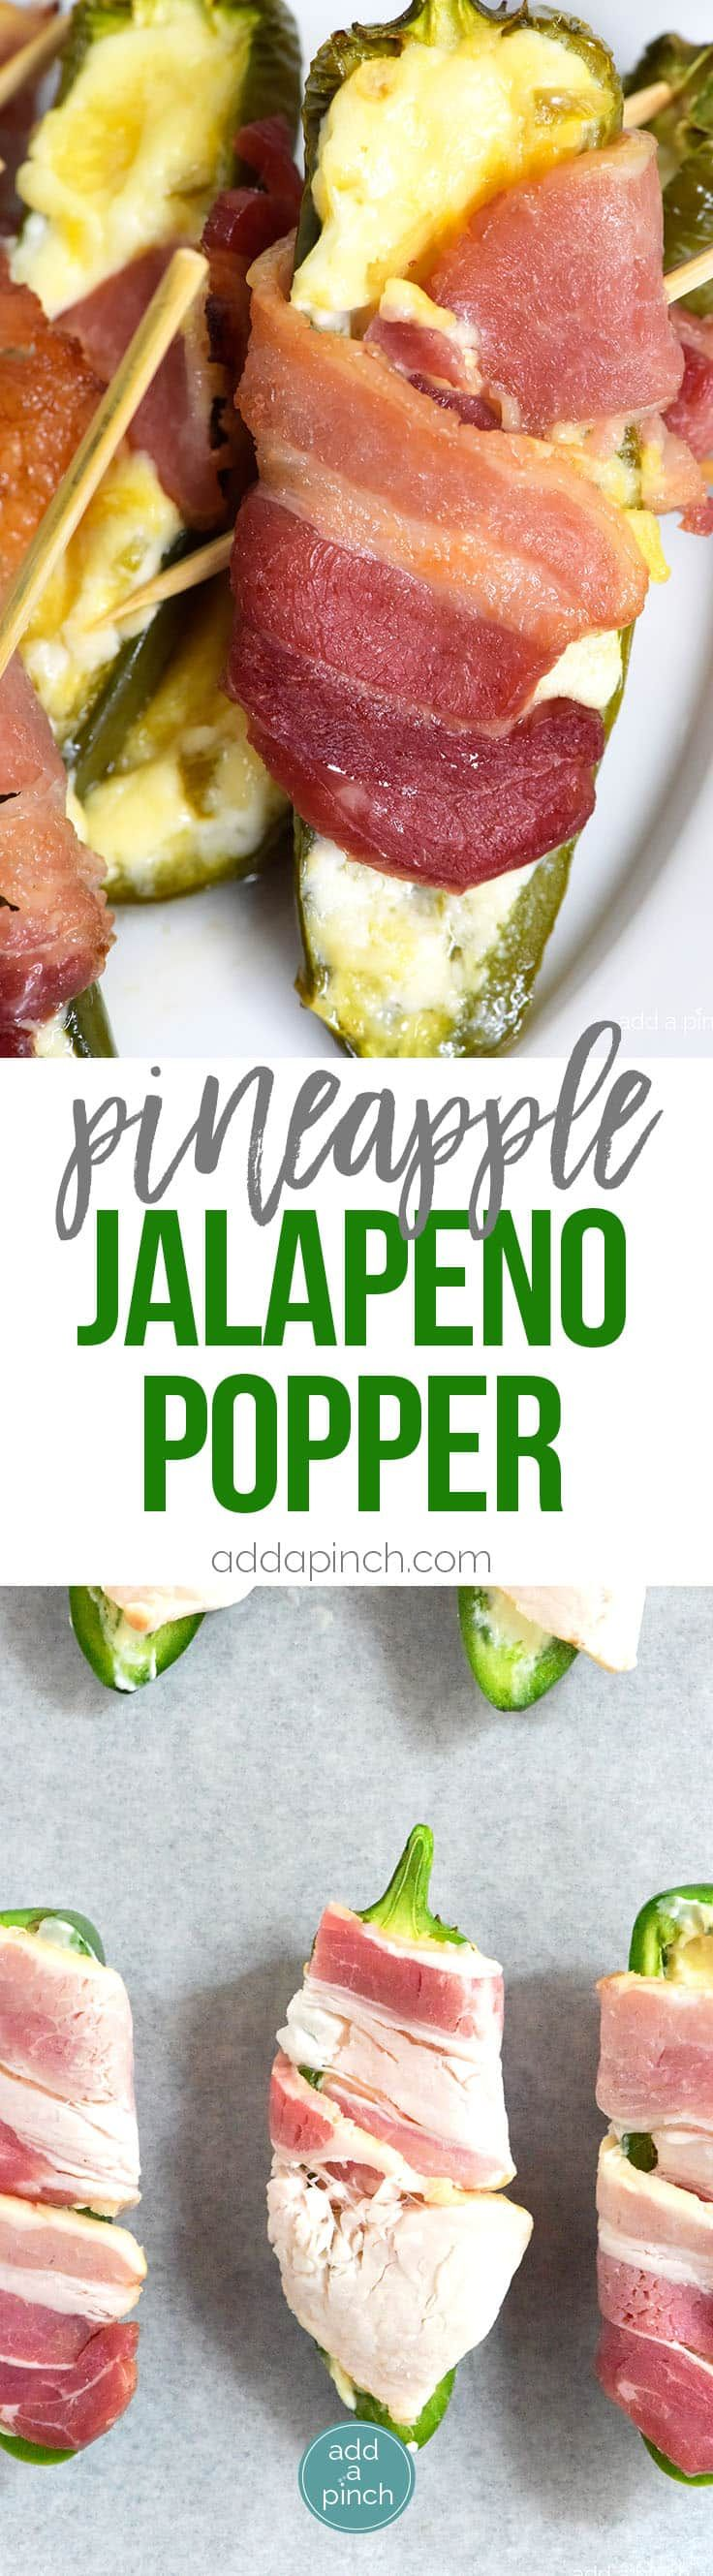 Pineapple Jalapeno Popper Recipe - Sweet and spicy, these jalapeno poppers are made with a pineapple cream cheese spread, wrapped with bacon and baked to perfection! // addapinch.com (Cheese Snacks Thoughts)